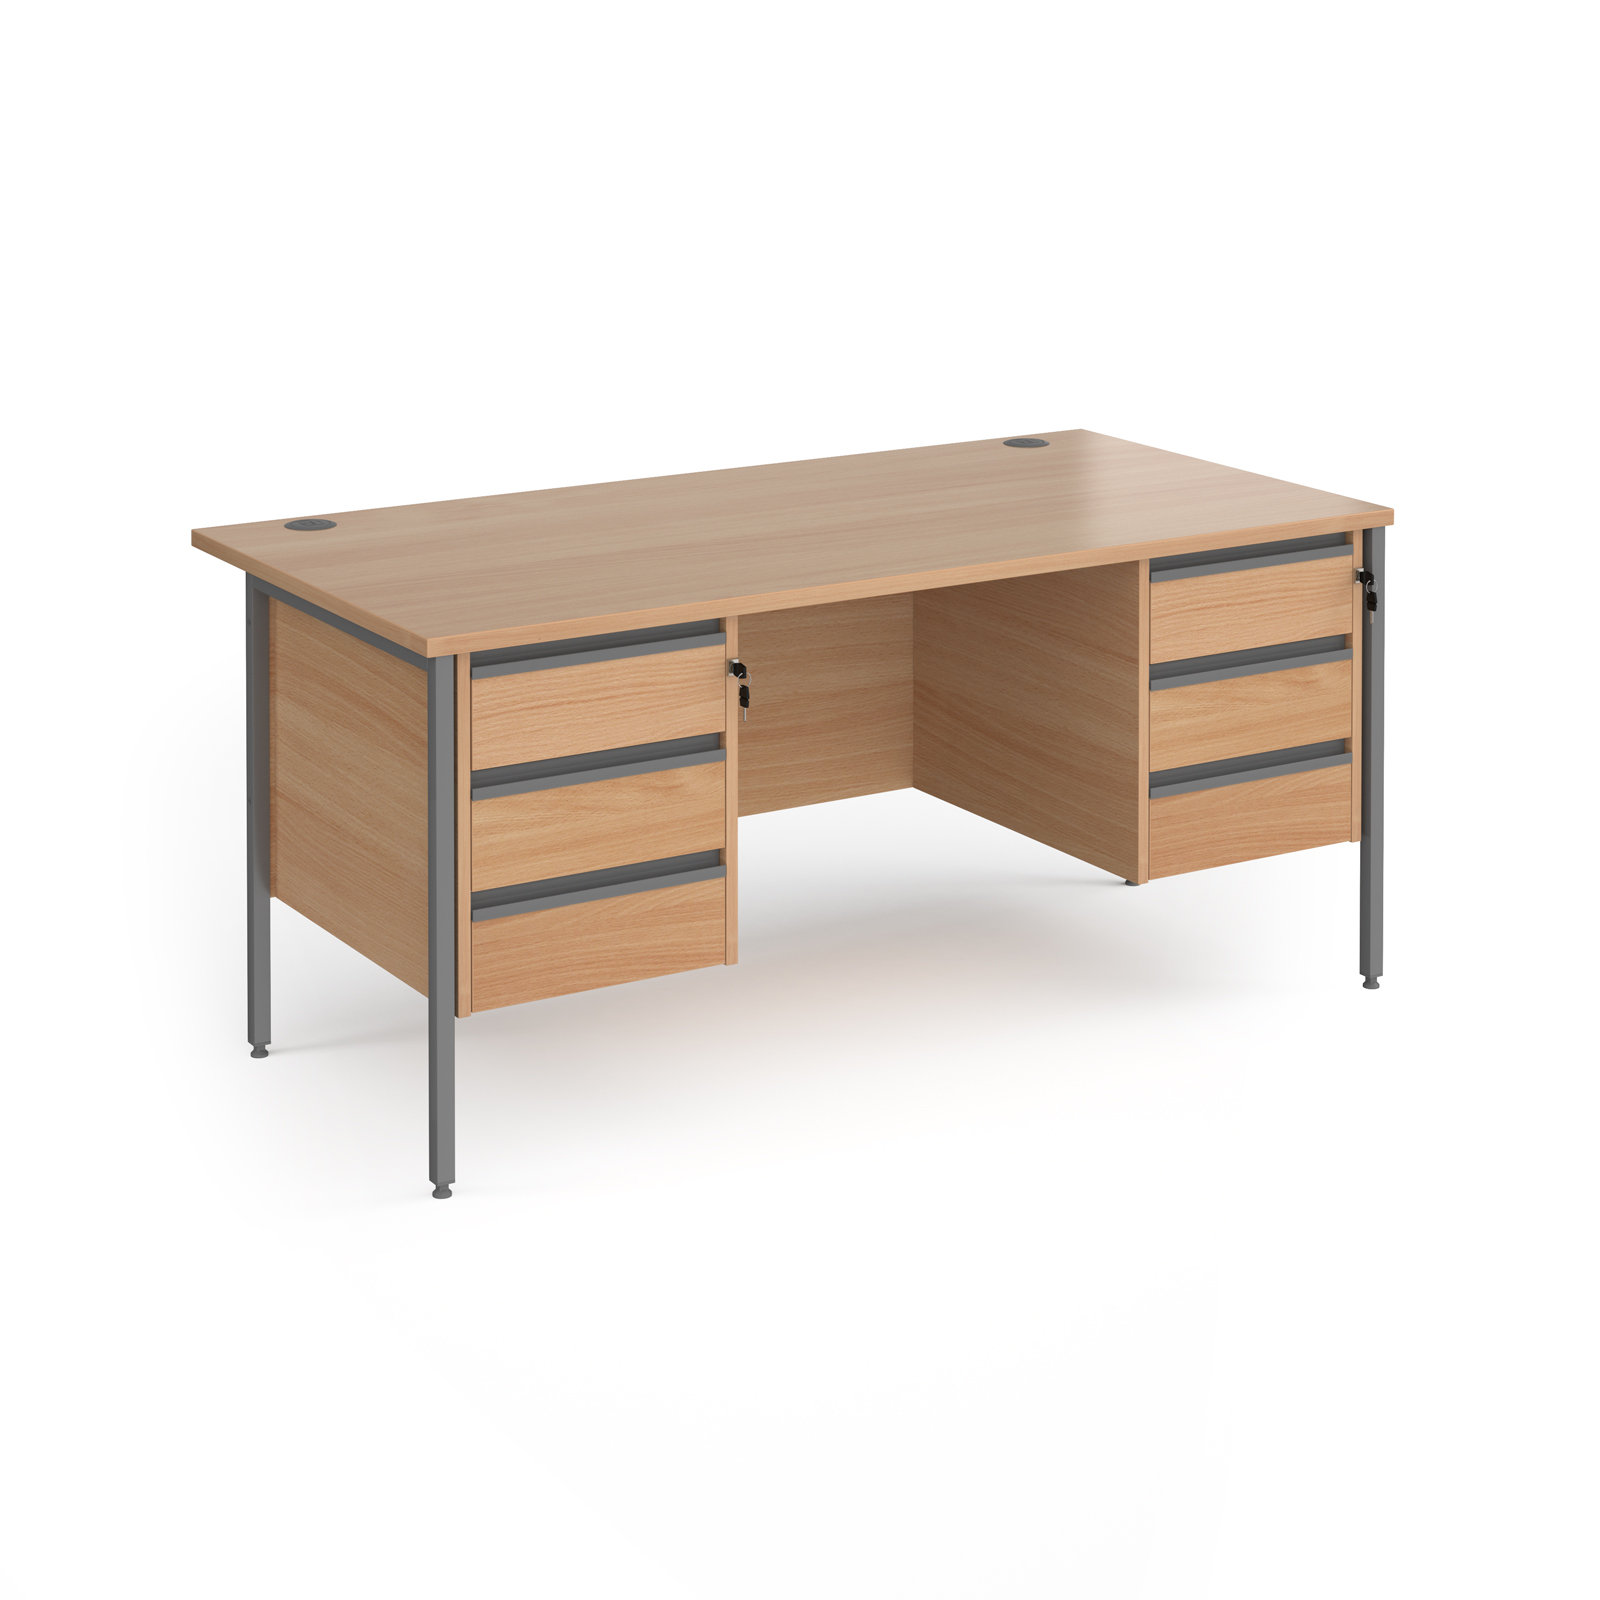 Rectangular Desks Contract 25 H-Frame straight desk with 3 and 3 drawer peds